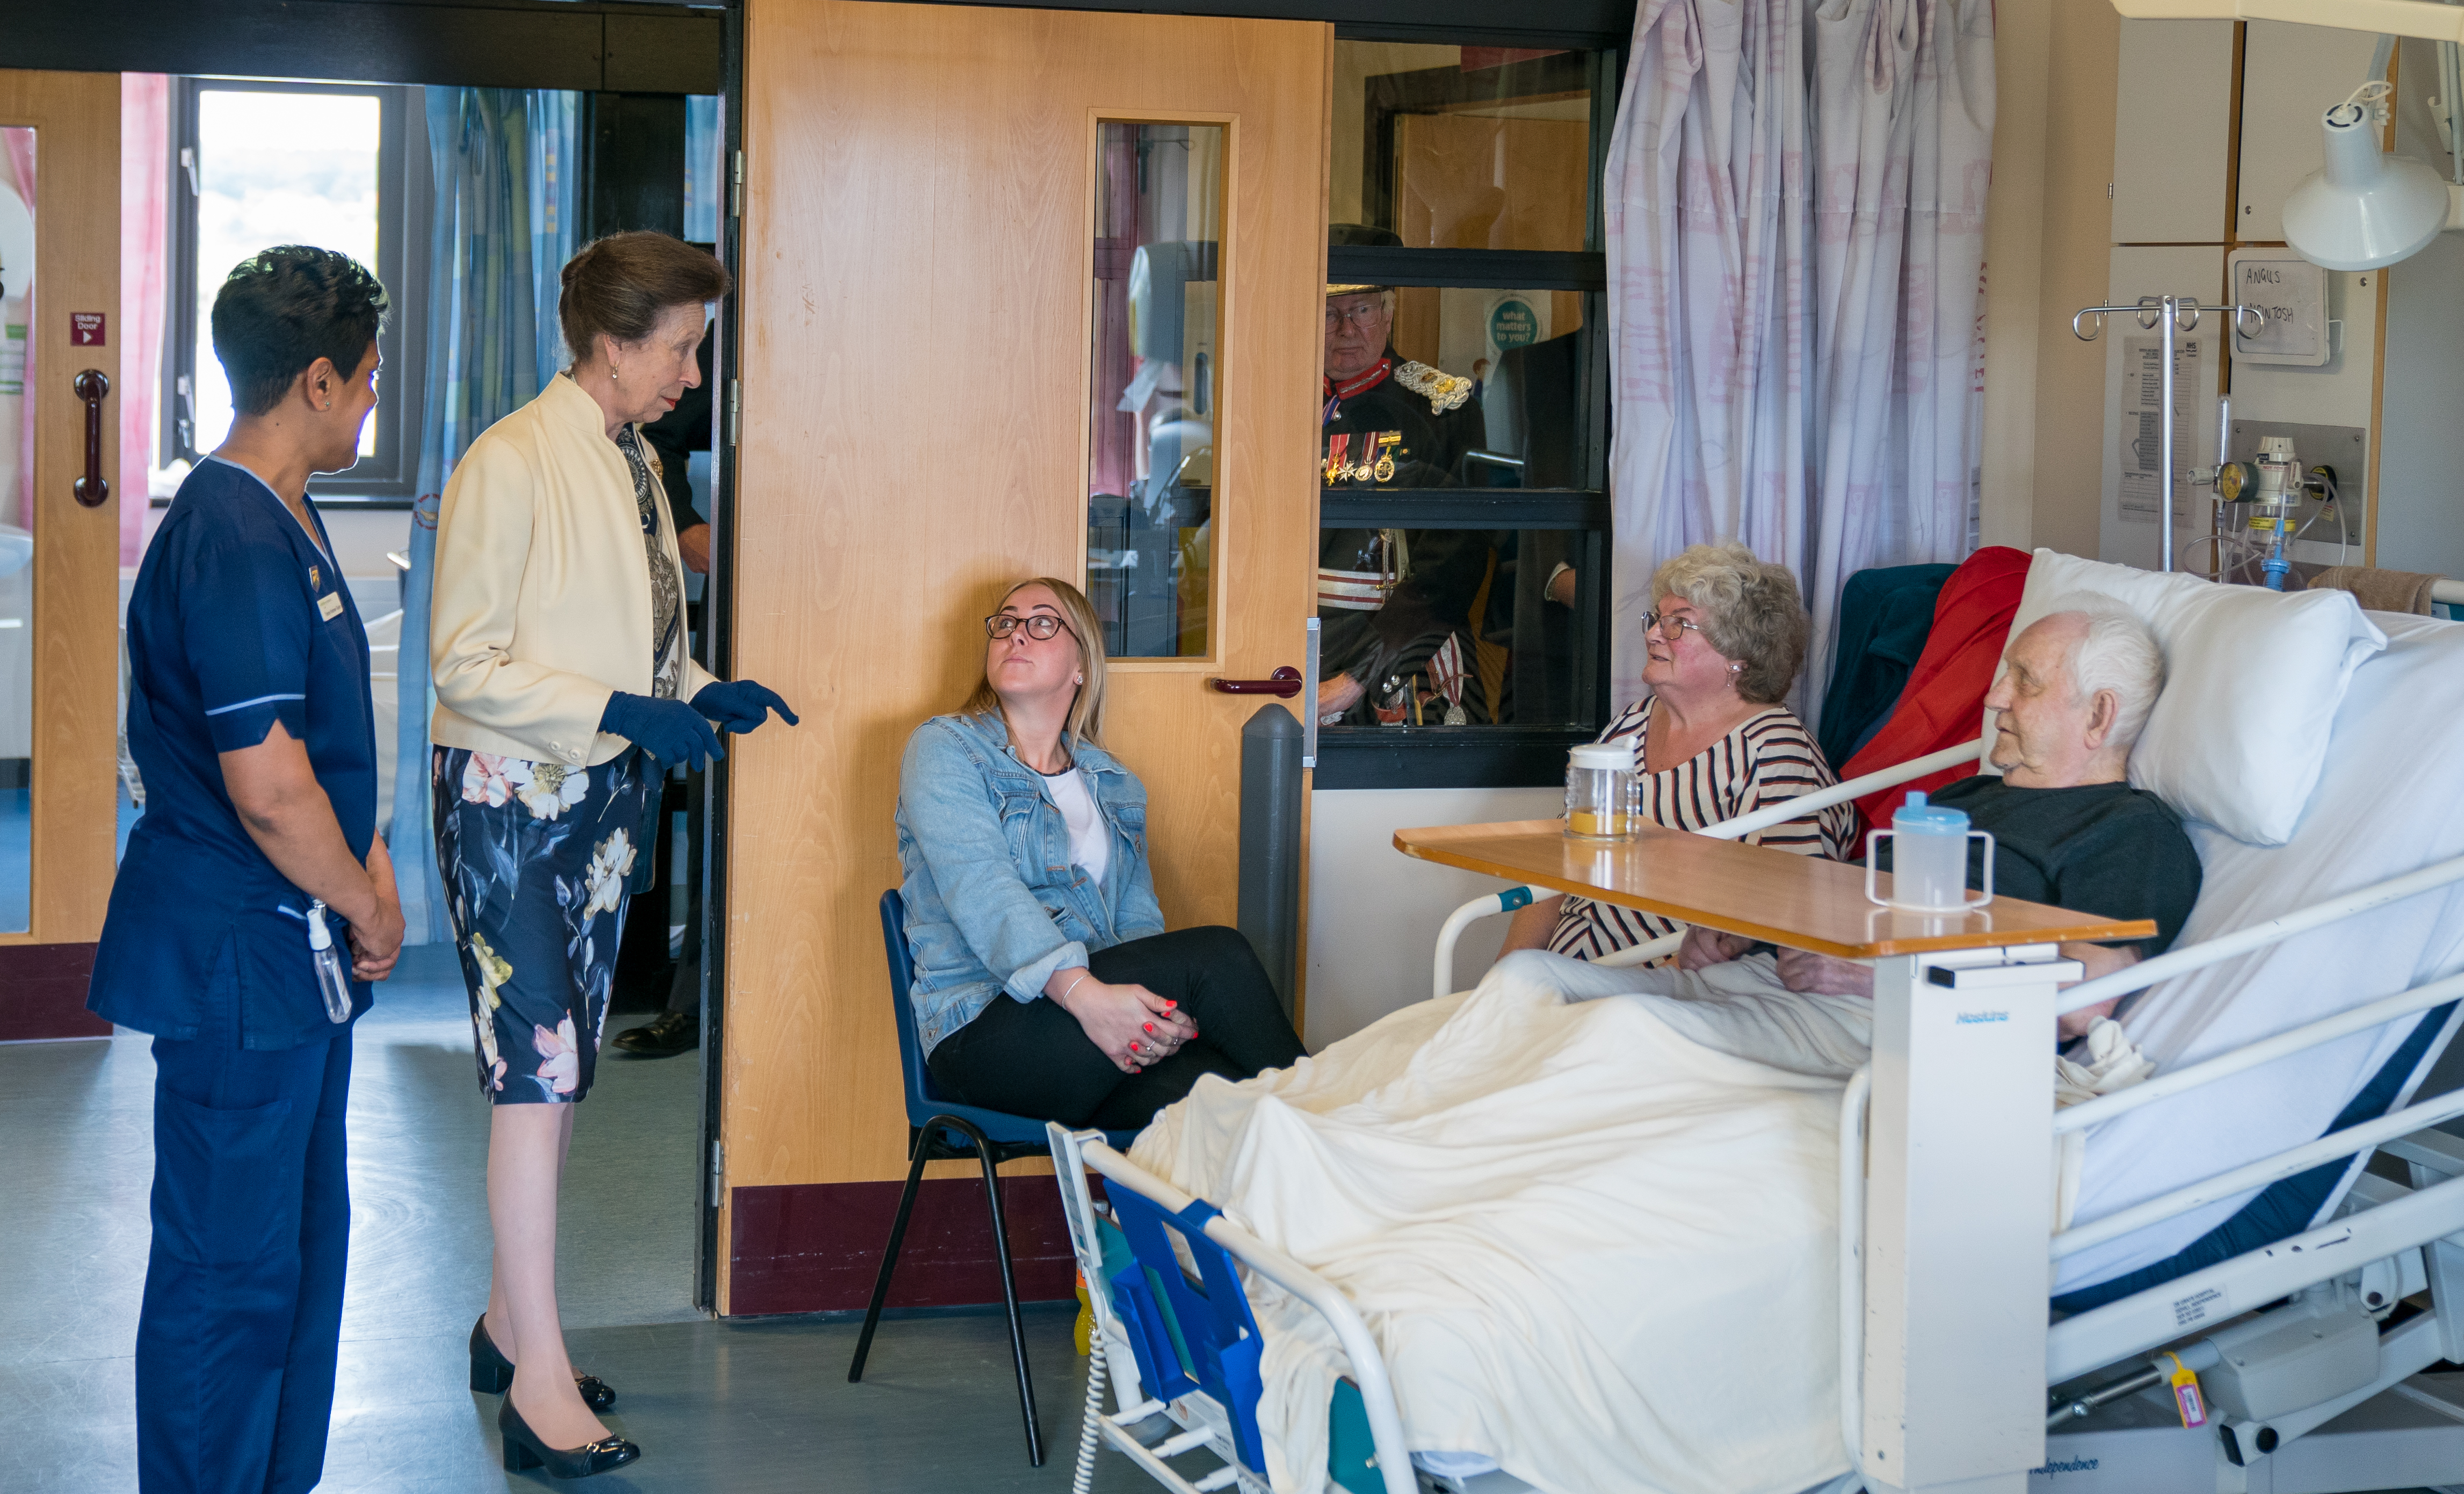 Princess Royal during her visit on the 200th Birthday of the Hospital where she unveiled a plaque and visited staff and patients.